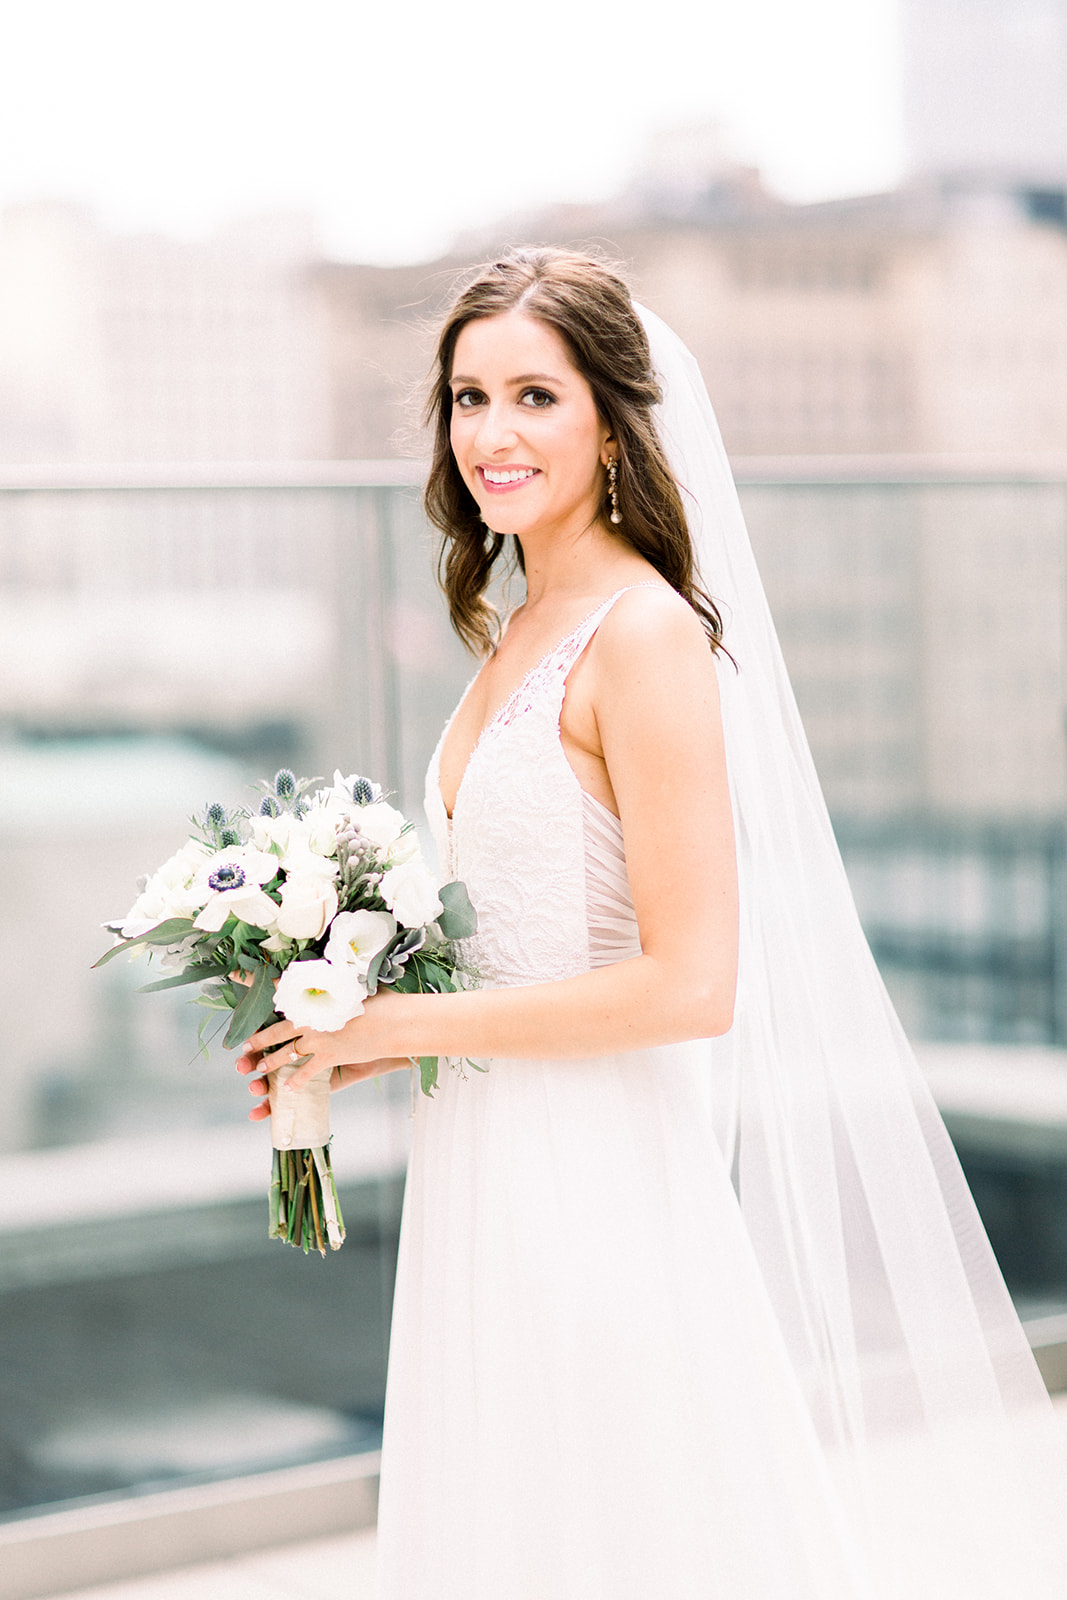 Stunning bride in her wedding dress holding her wedding bouquet for Pittsburgh wedding held at Hotel Monaco. See more beautiful details of this simple, yet stunning wedding at exhale-events.com!